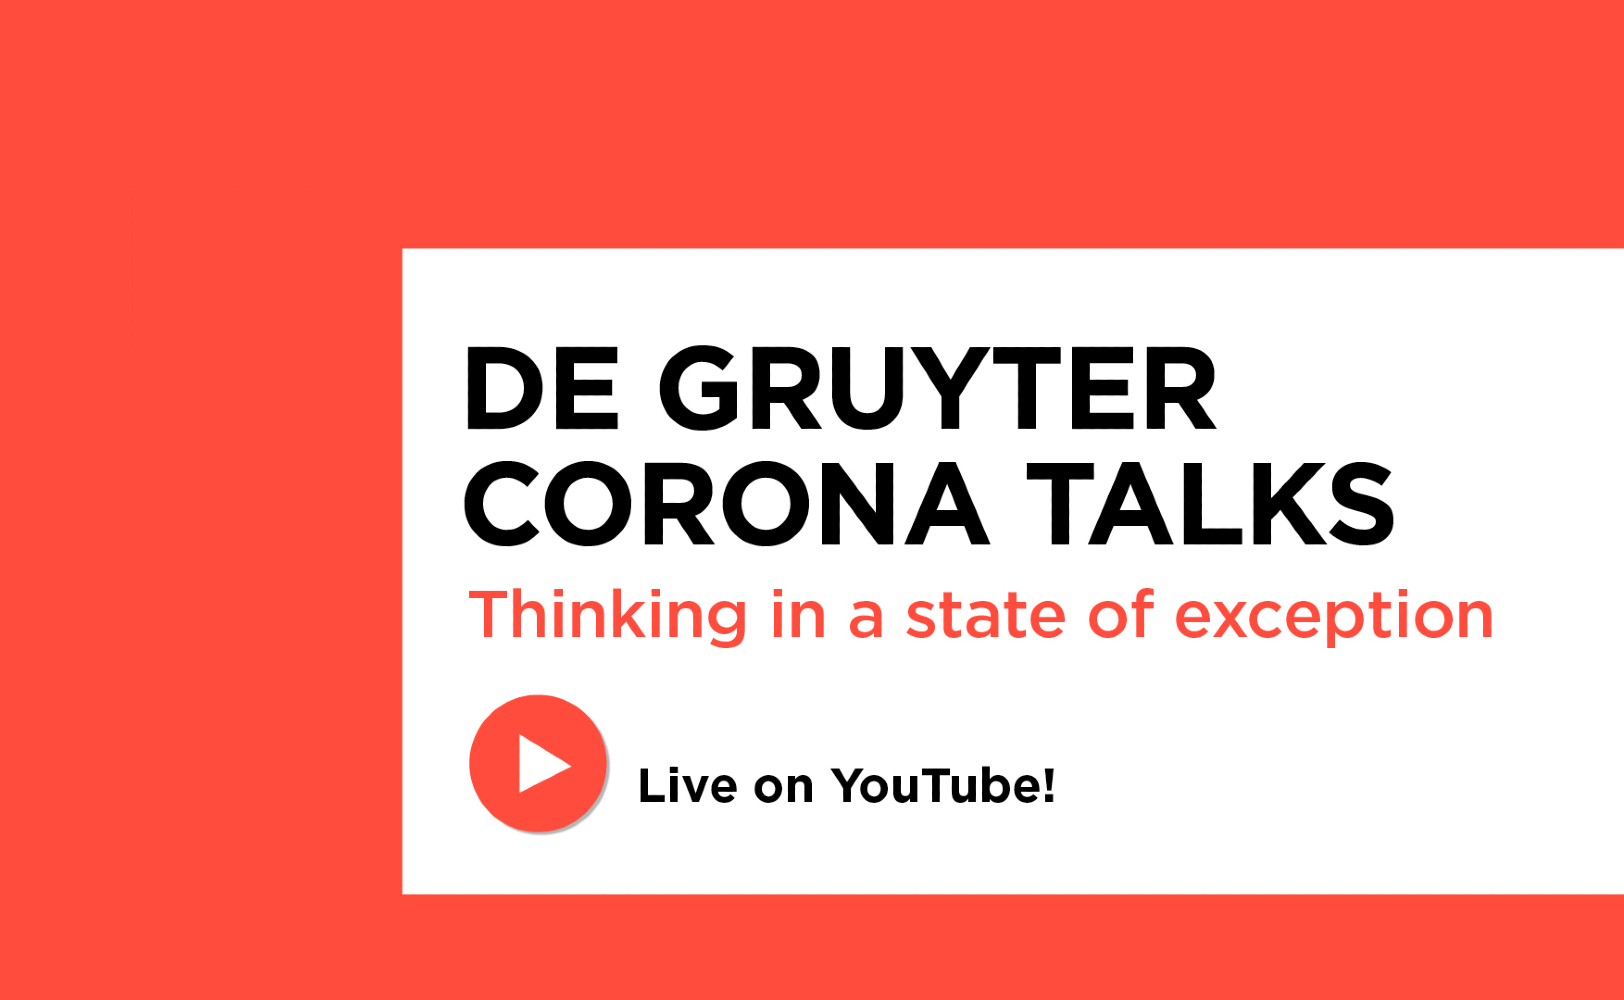 De Gruyter Corona Talks